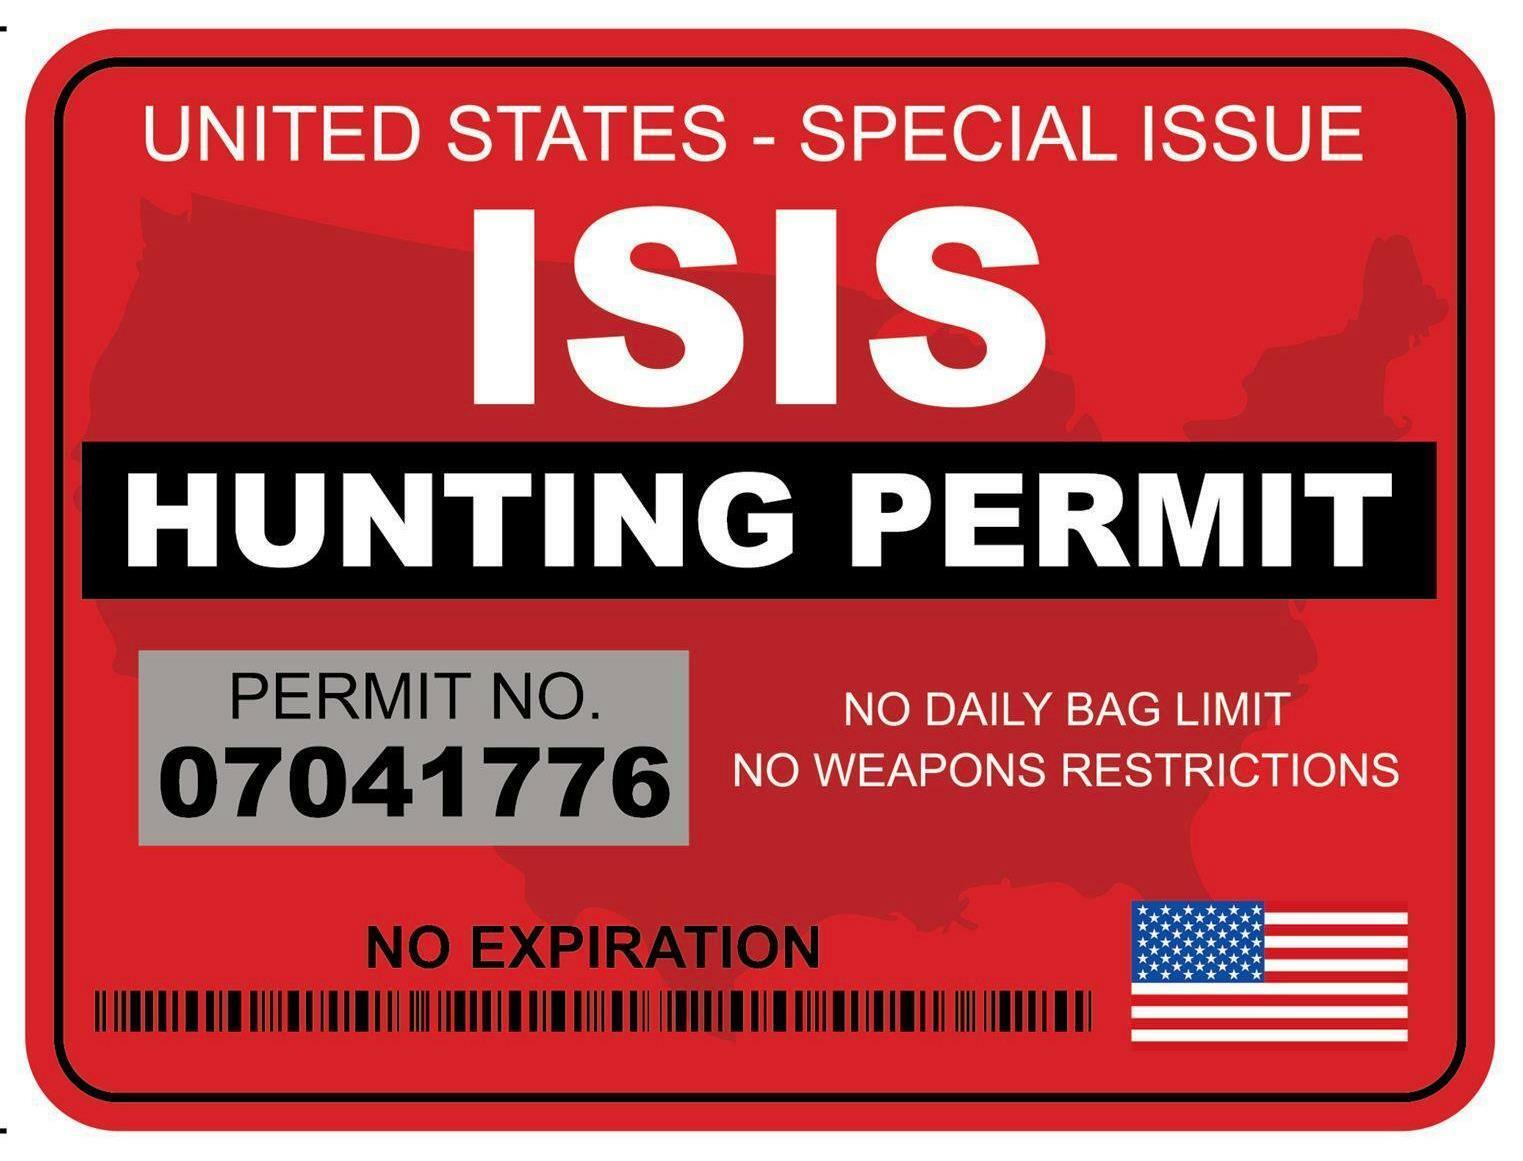 ISIS HUNTING PERMIT DECAL/STICKER